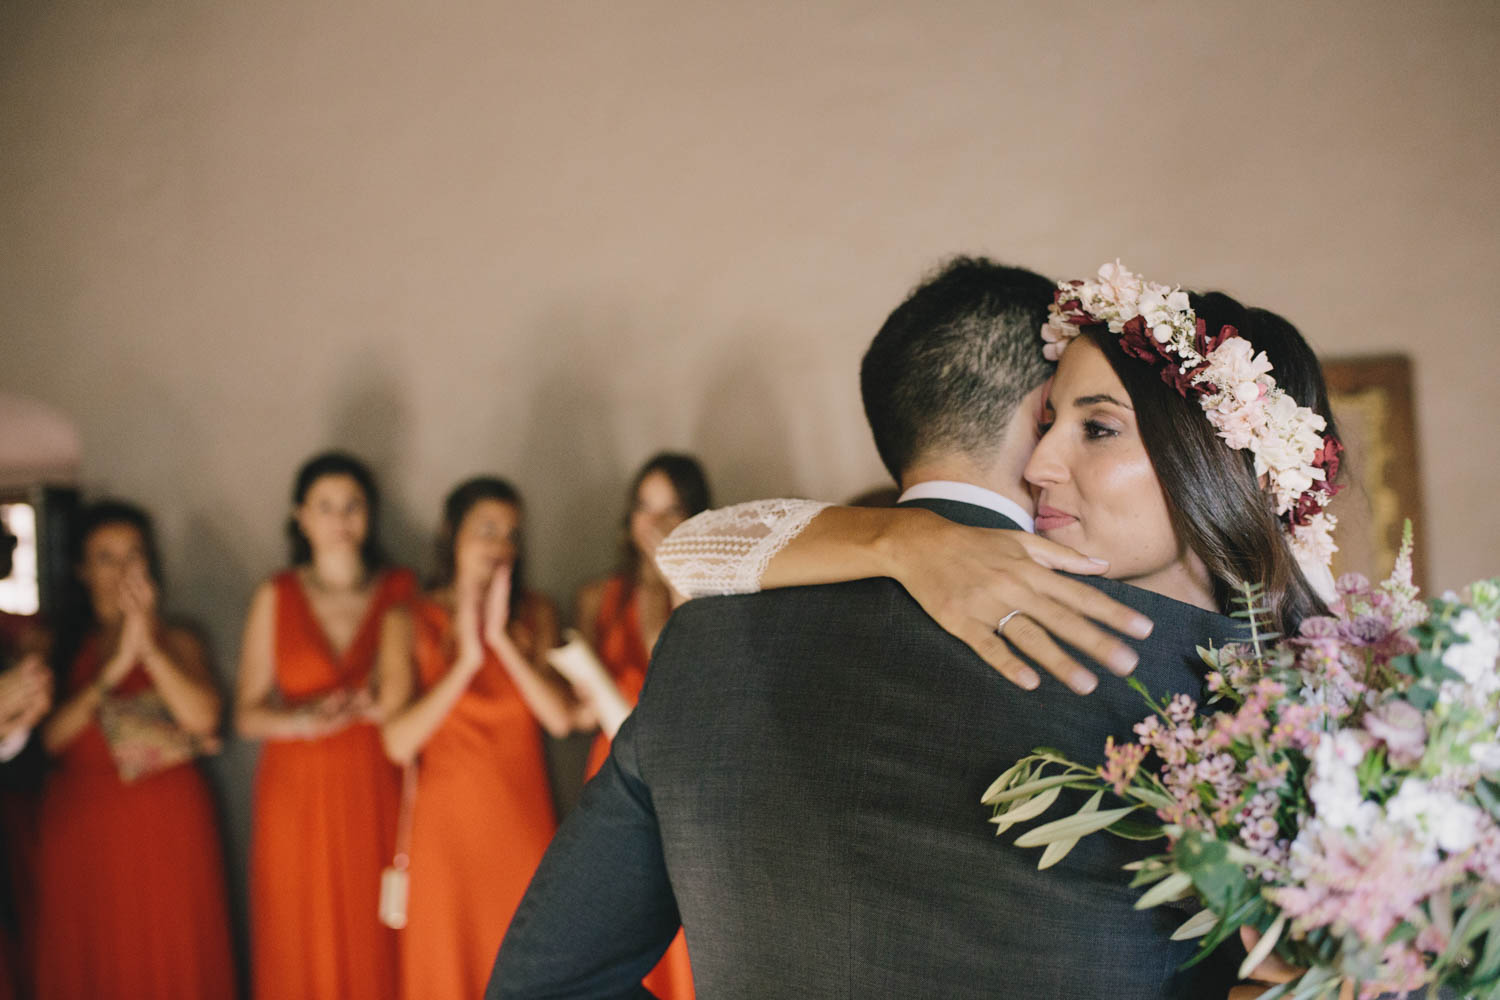 hondo_studio_wedding_photography_maria_ignasi_web-48